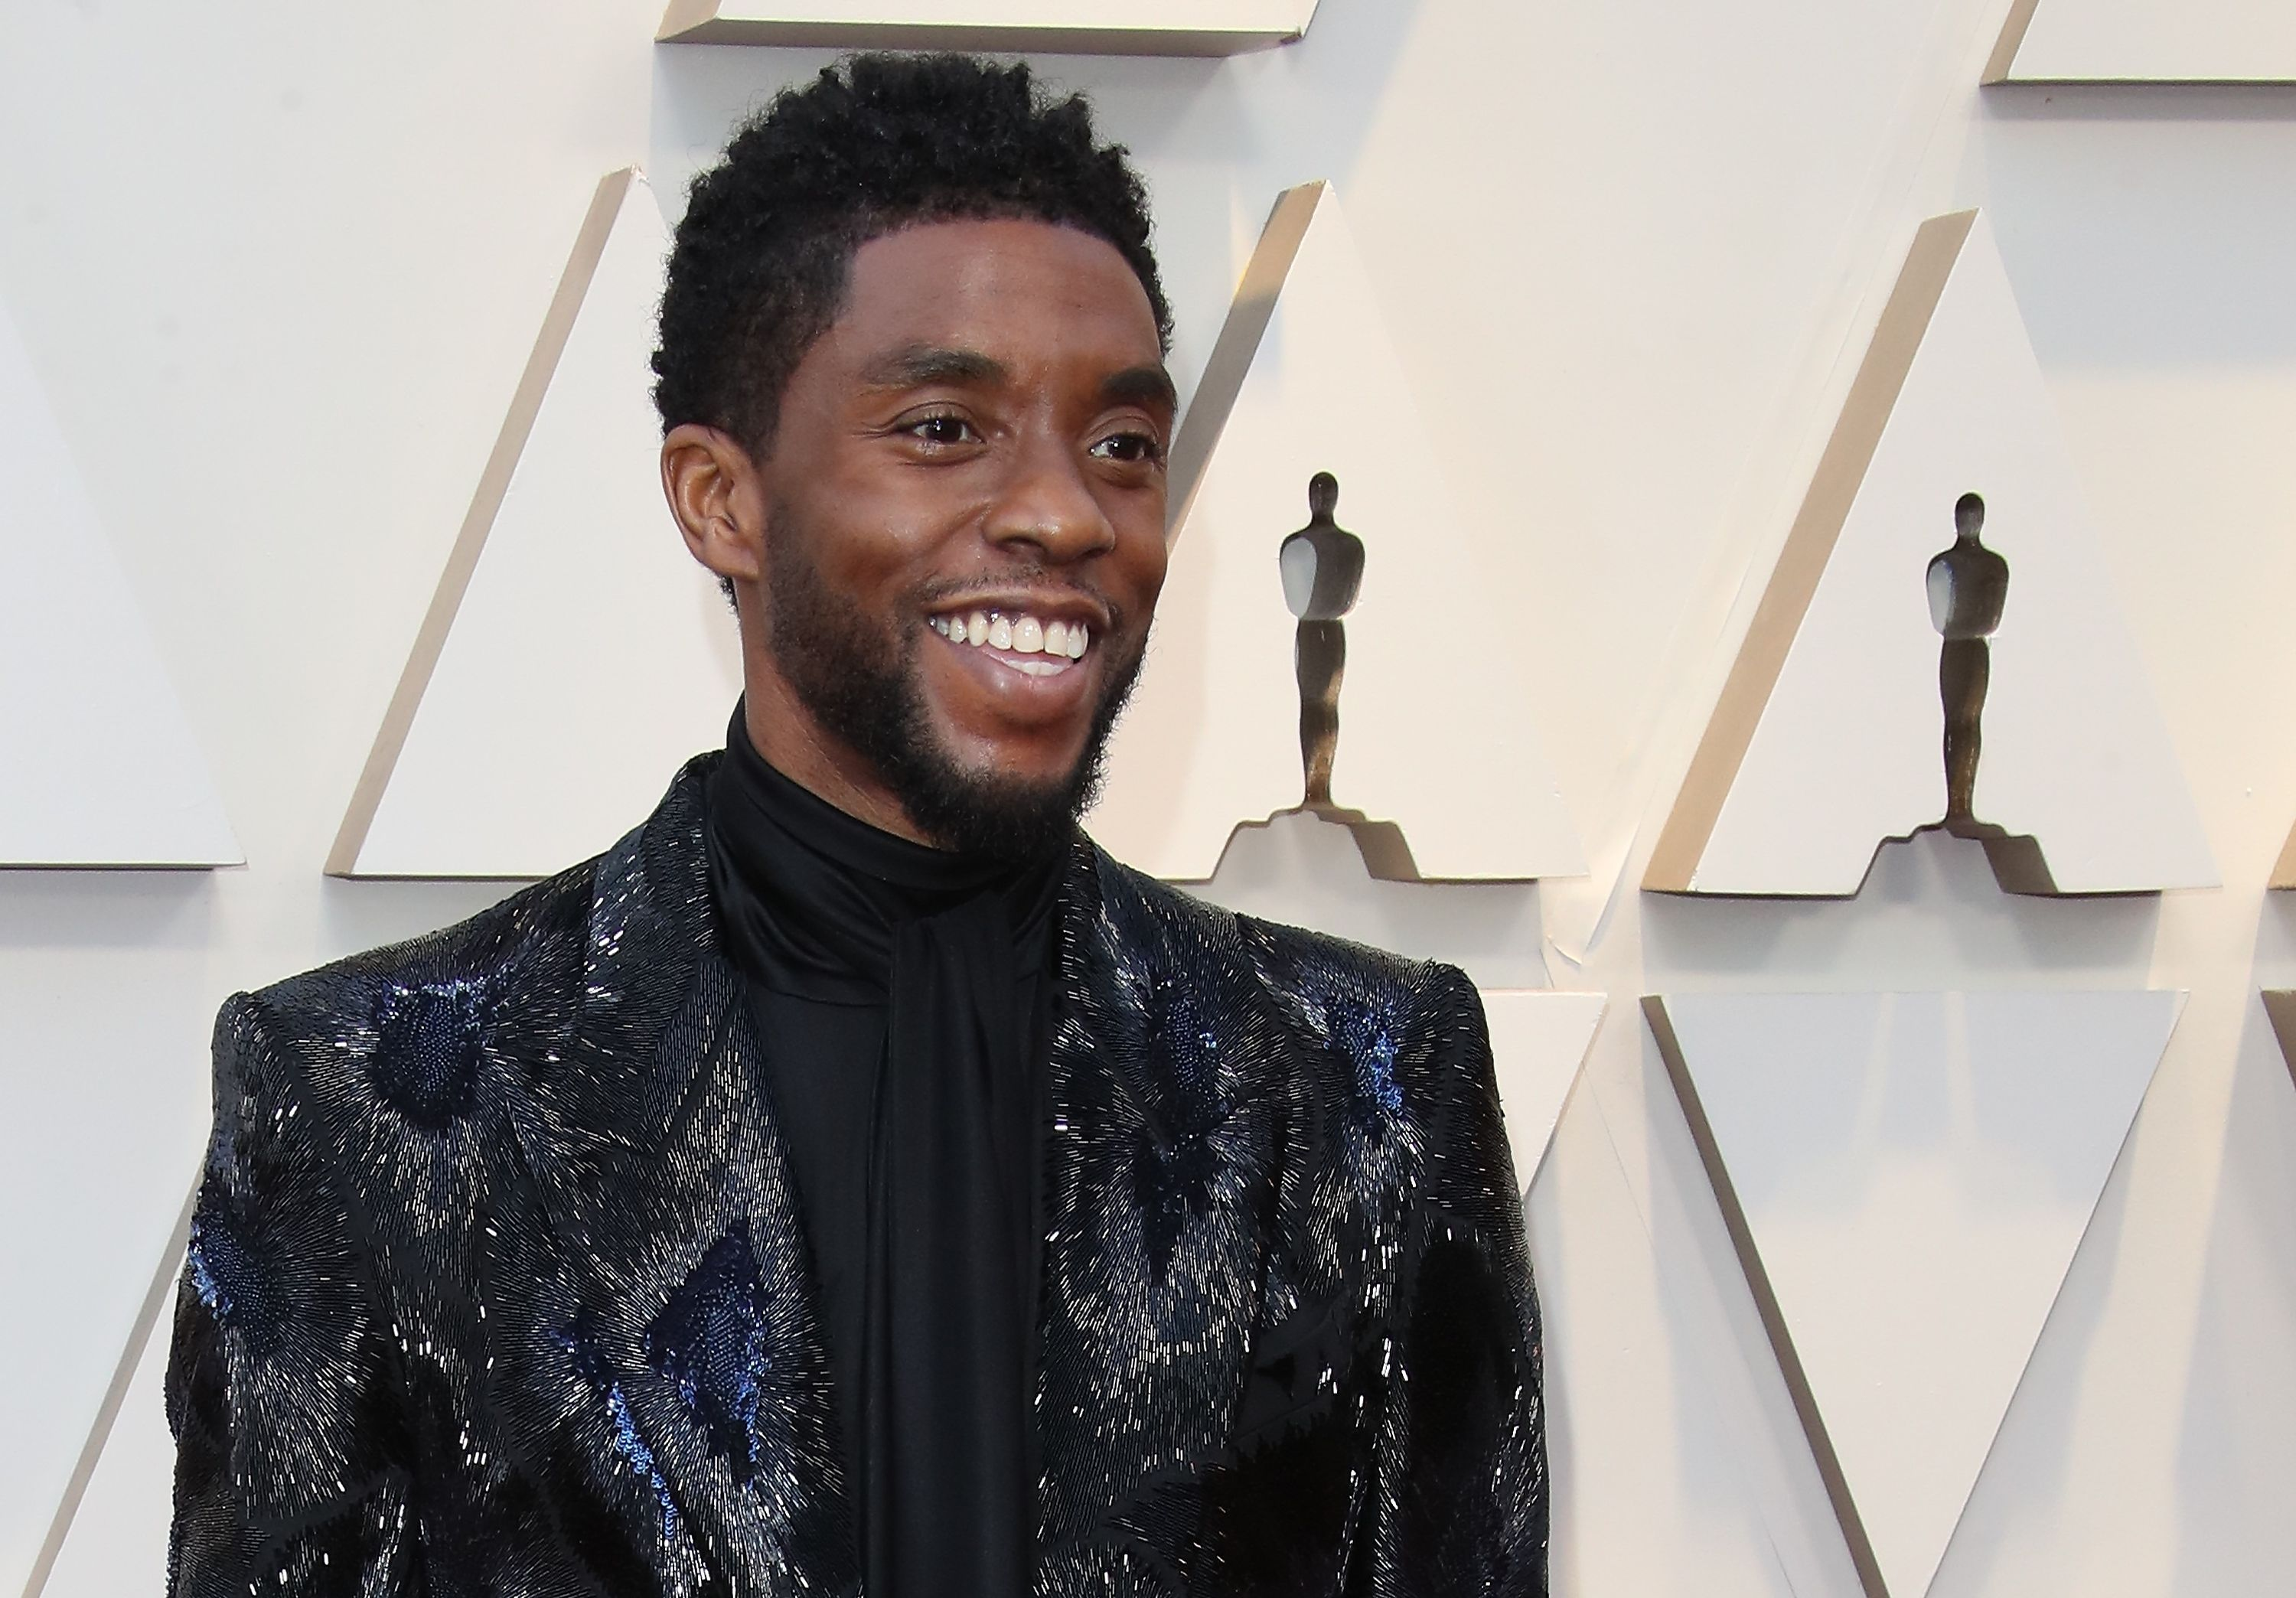 Chadwick Boseman attends the 91st Annual Academy Awards at Hollywood and Highland on February 24, 2019 in Hollywood, California | Photo: Getty Images